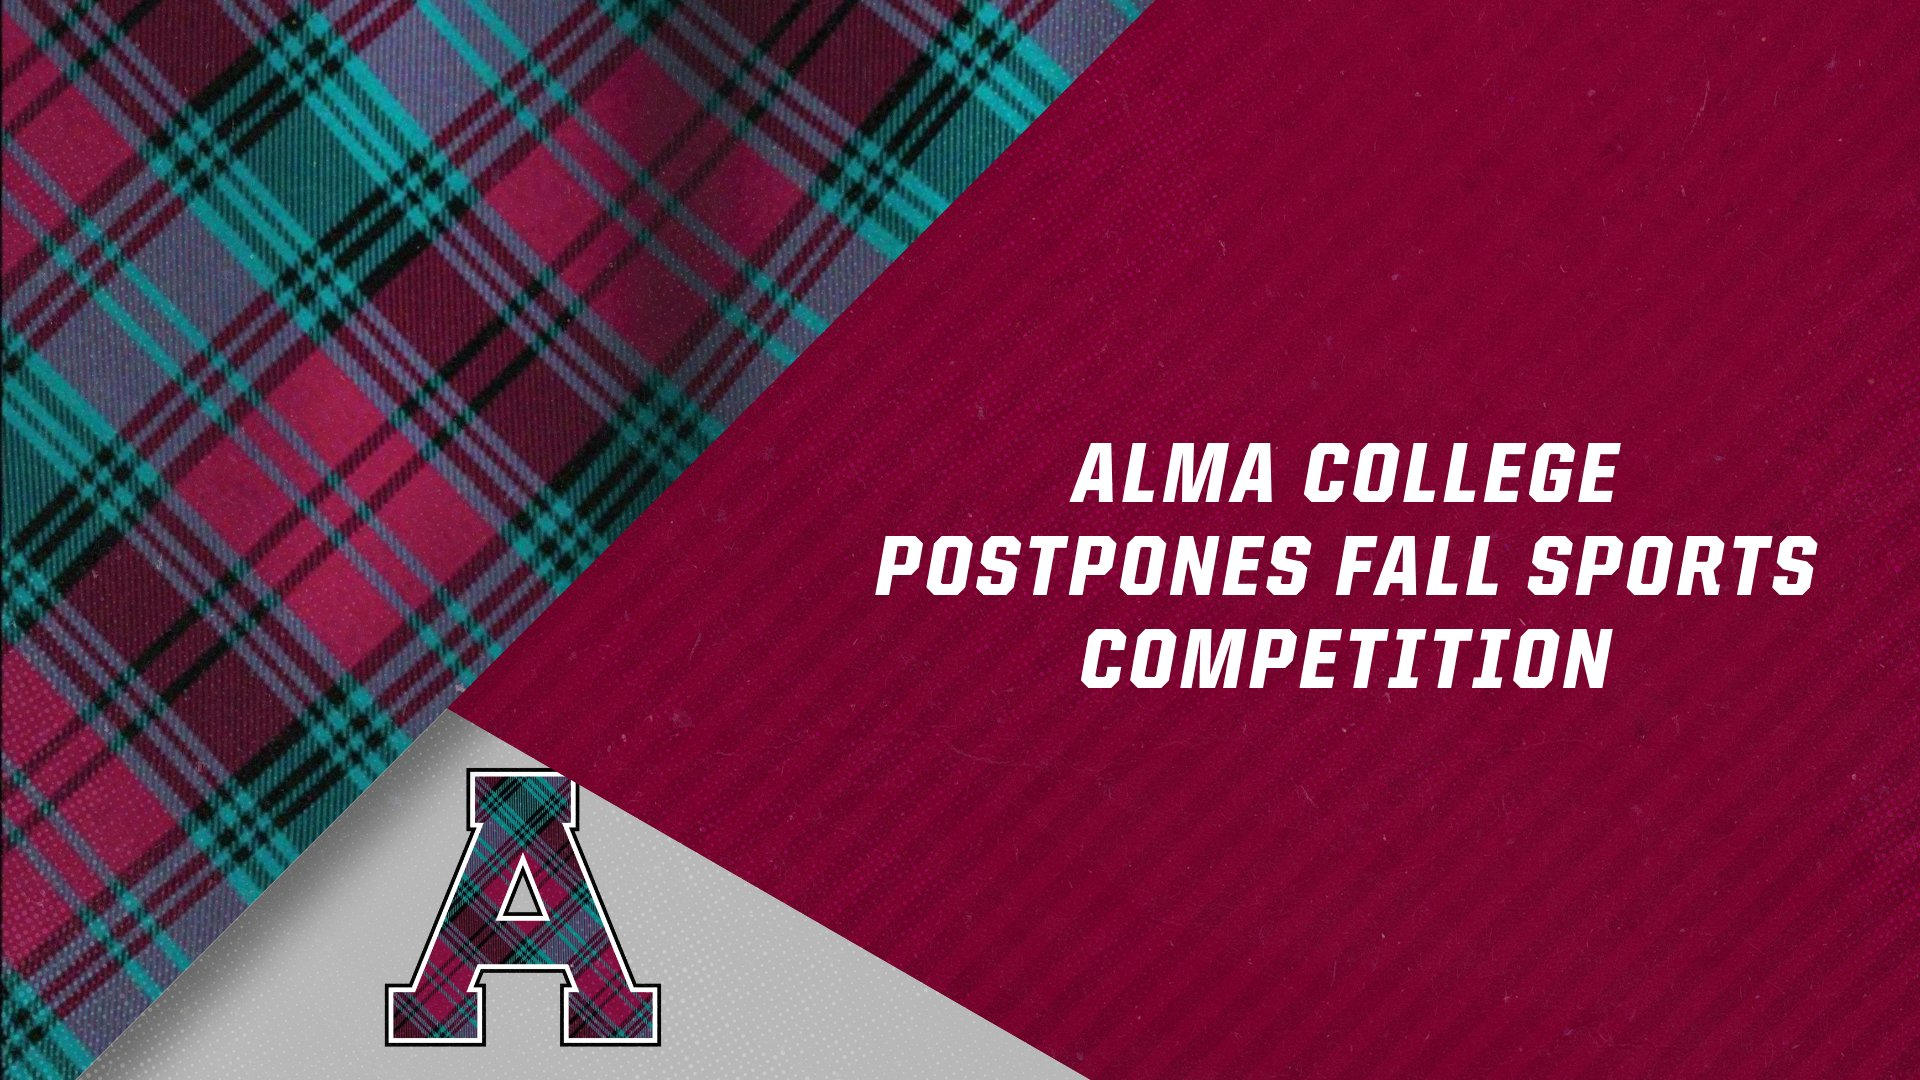 Alma College postpones fall sports competition and championships to 2021